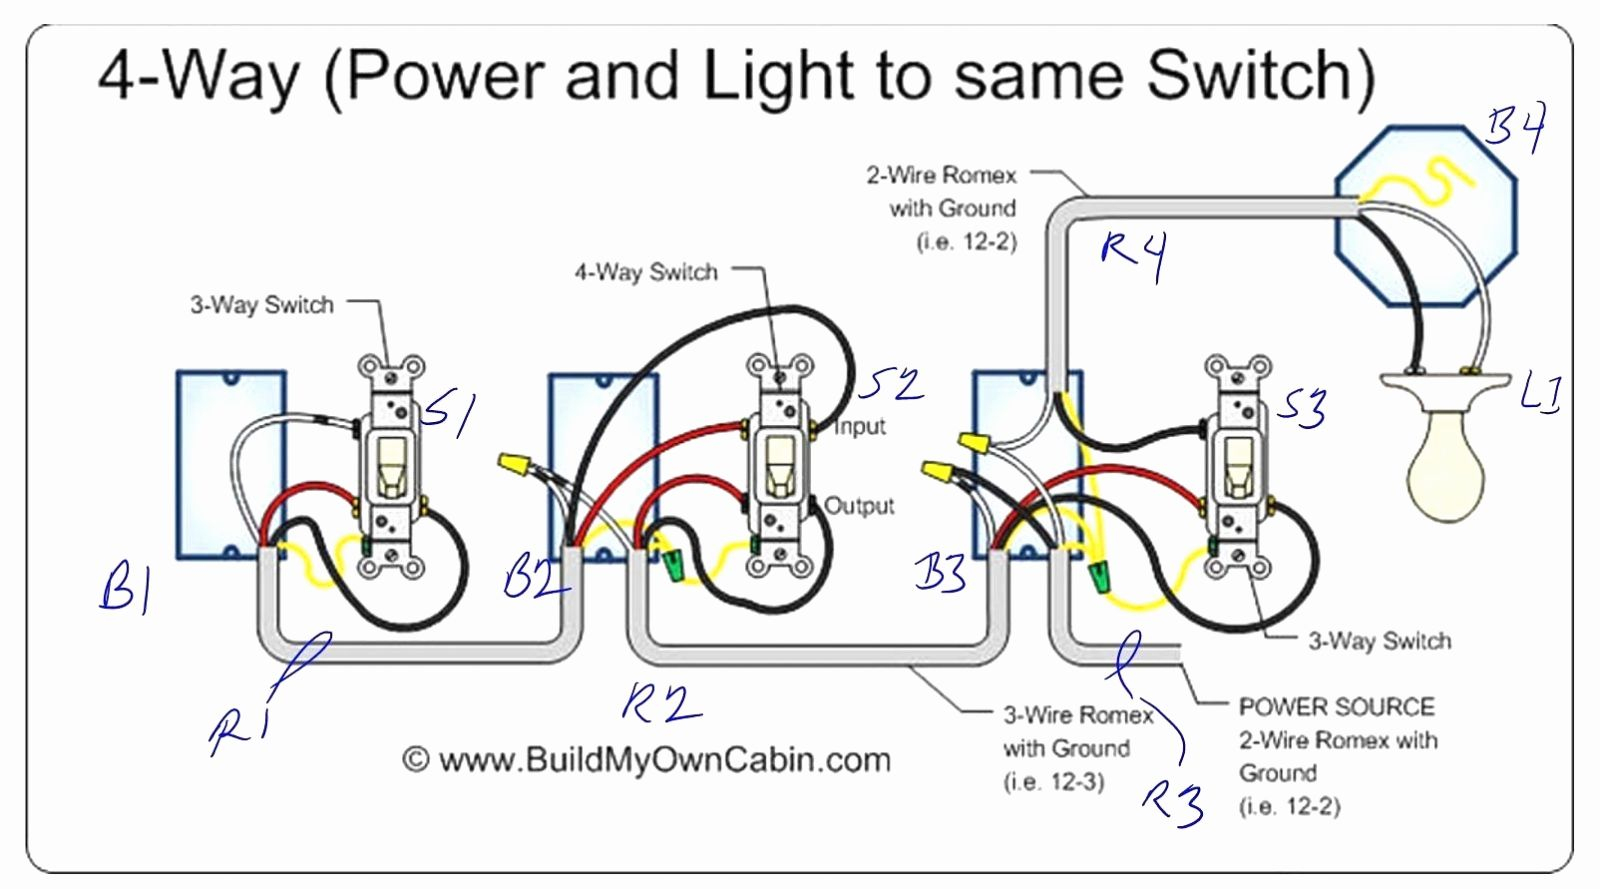 Lutron Dimmer 3 Way Switch Wiring Diagram Power Onward | Wiring Diagram - Lutron Dimmer Wiring Diagram